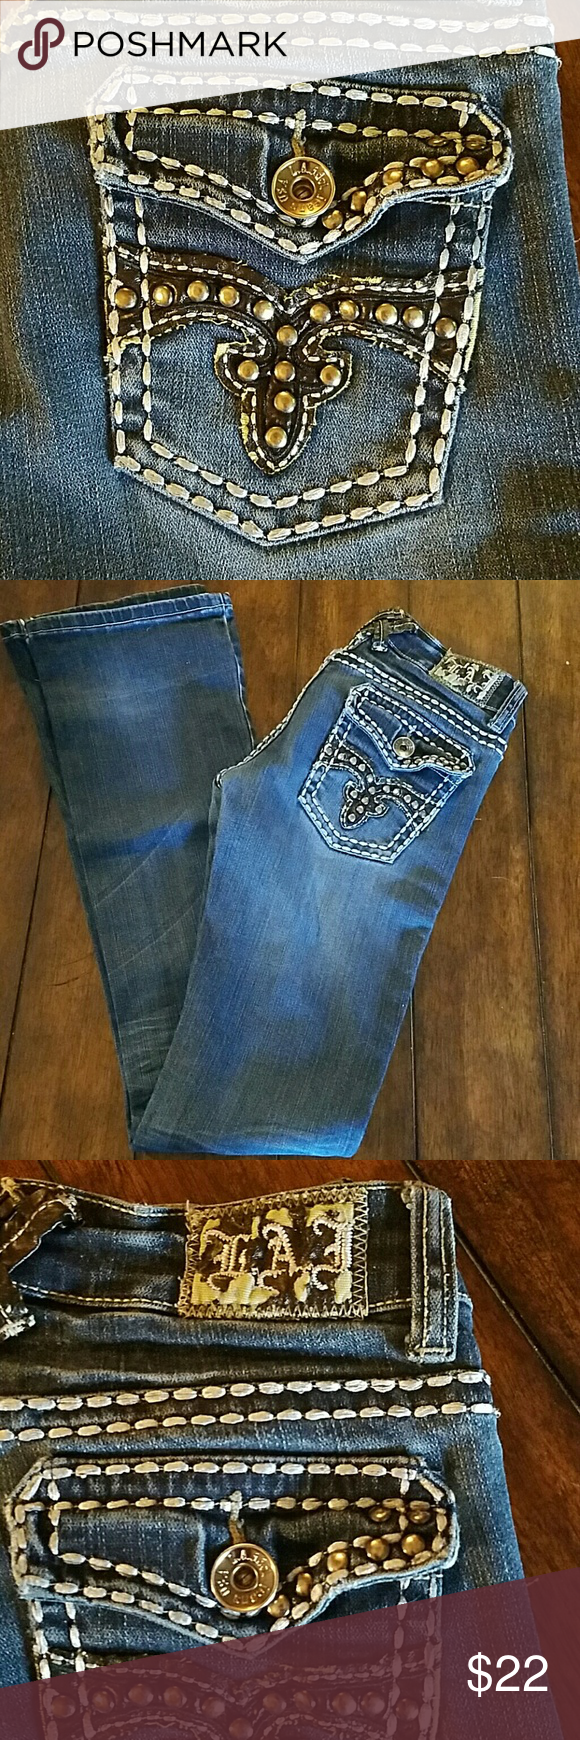 LA Idol jeans Worn a bit, but still really great condition. I just grew out of them. No rips or stains other than some pealing on the tag on the back (shown in picture 3). Thick stitching and brown leather with studs on back pockets LA Idol Jeans Boot Cut